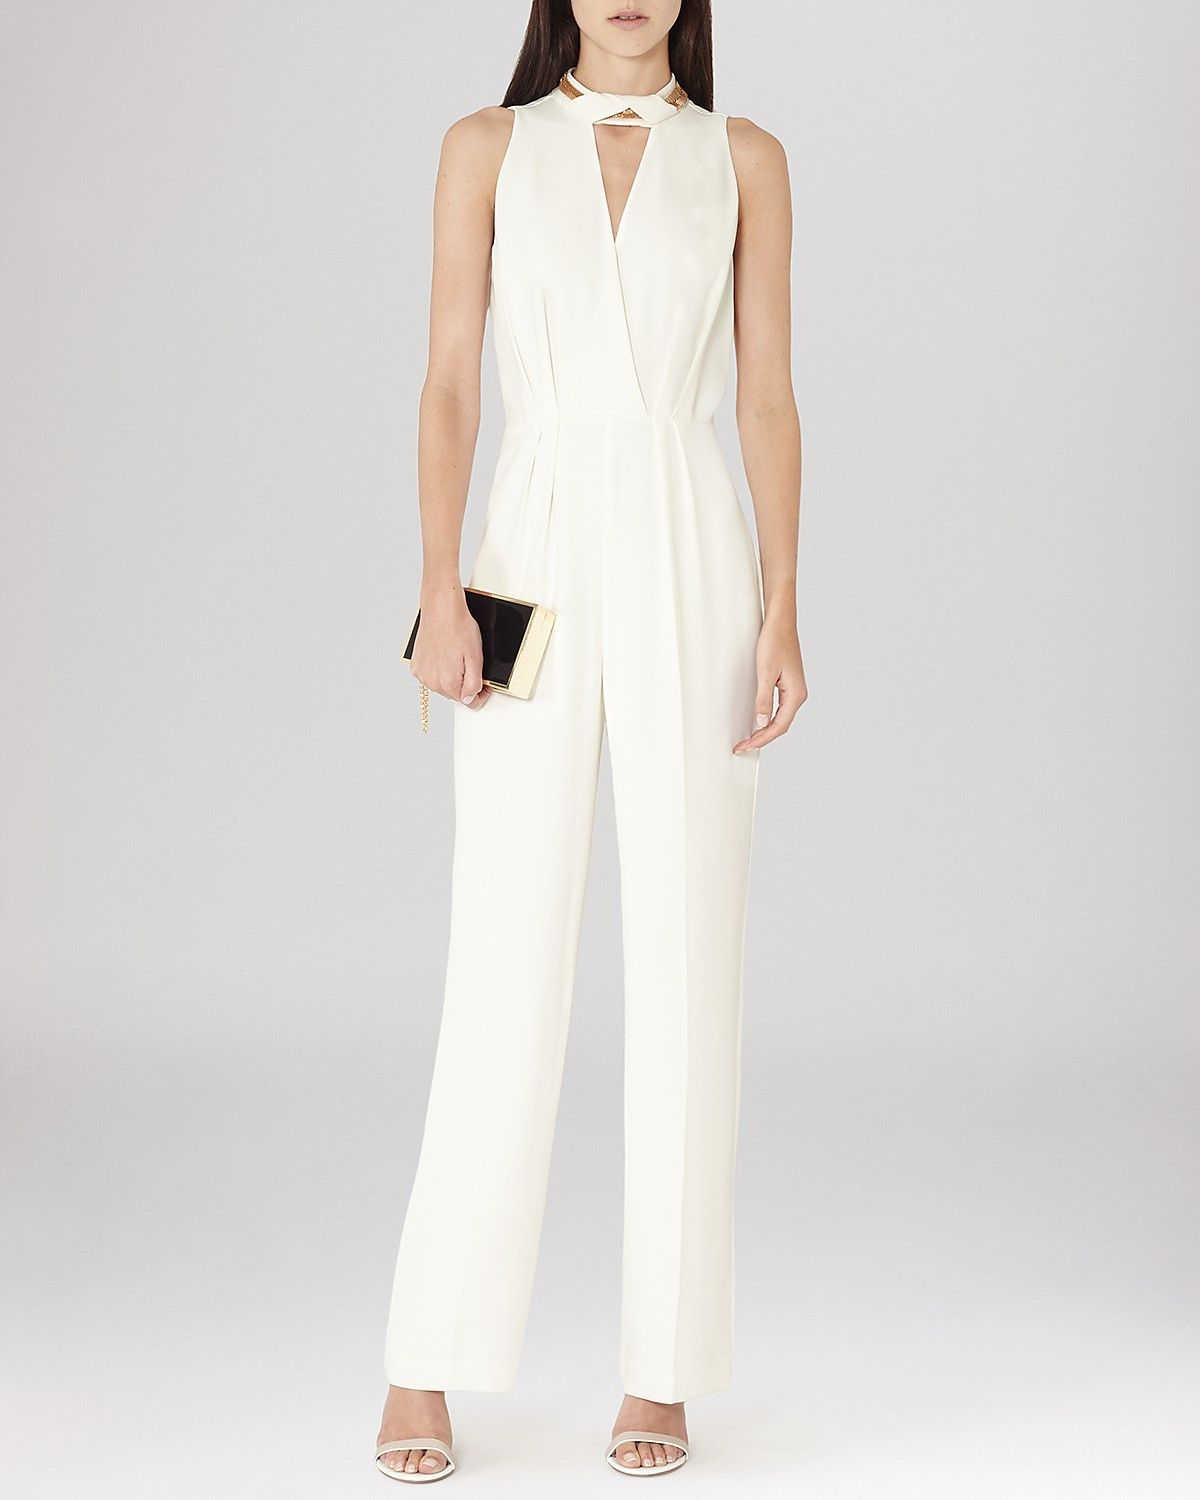 b5ea284a847 REISS Jumpsuit - Kenna Chain Neckline